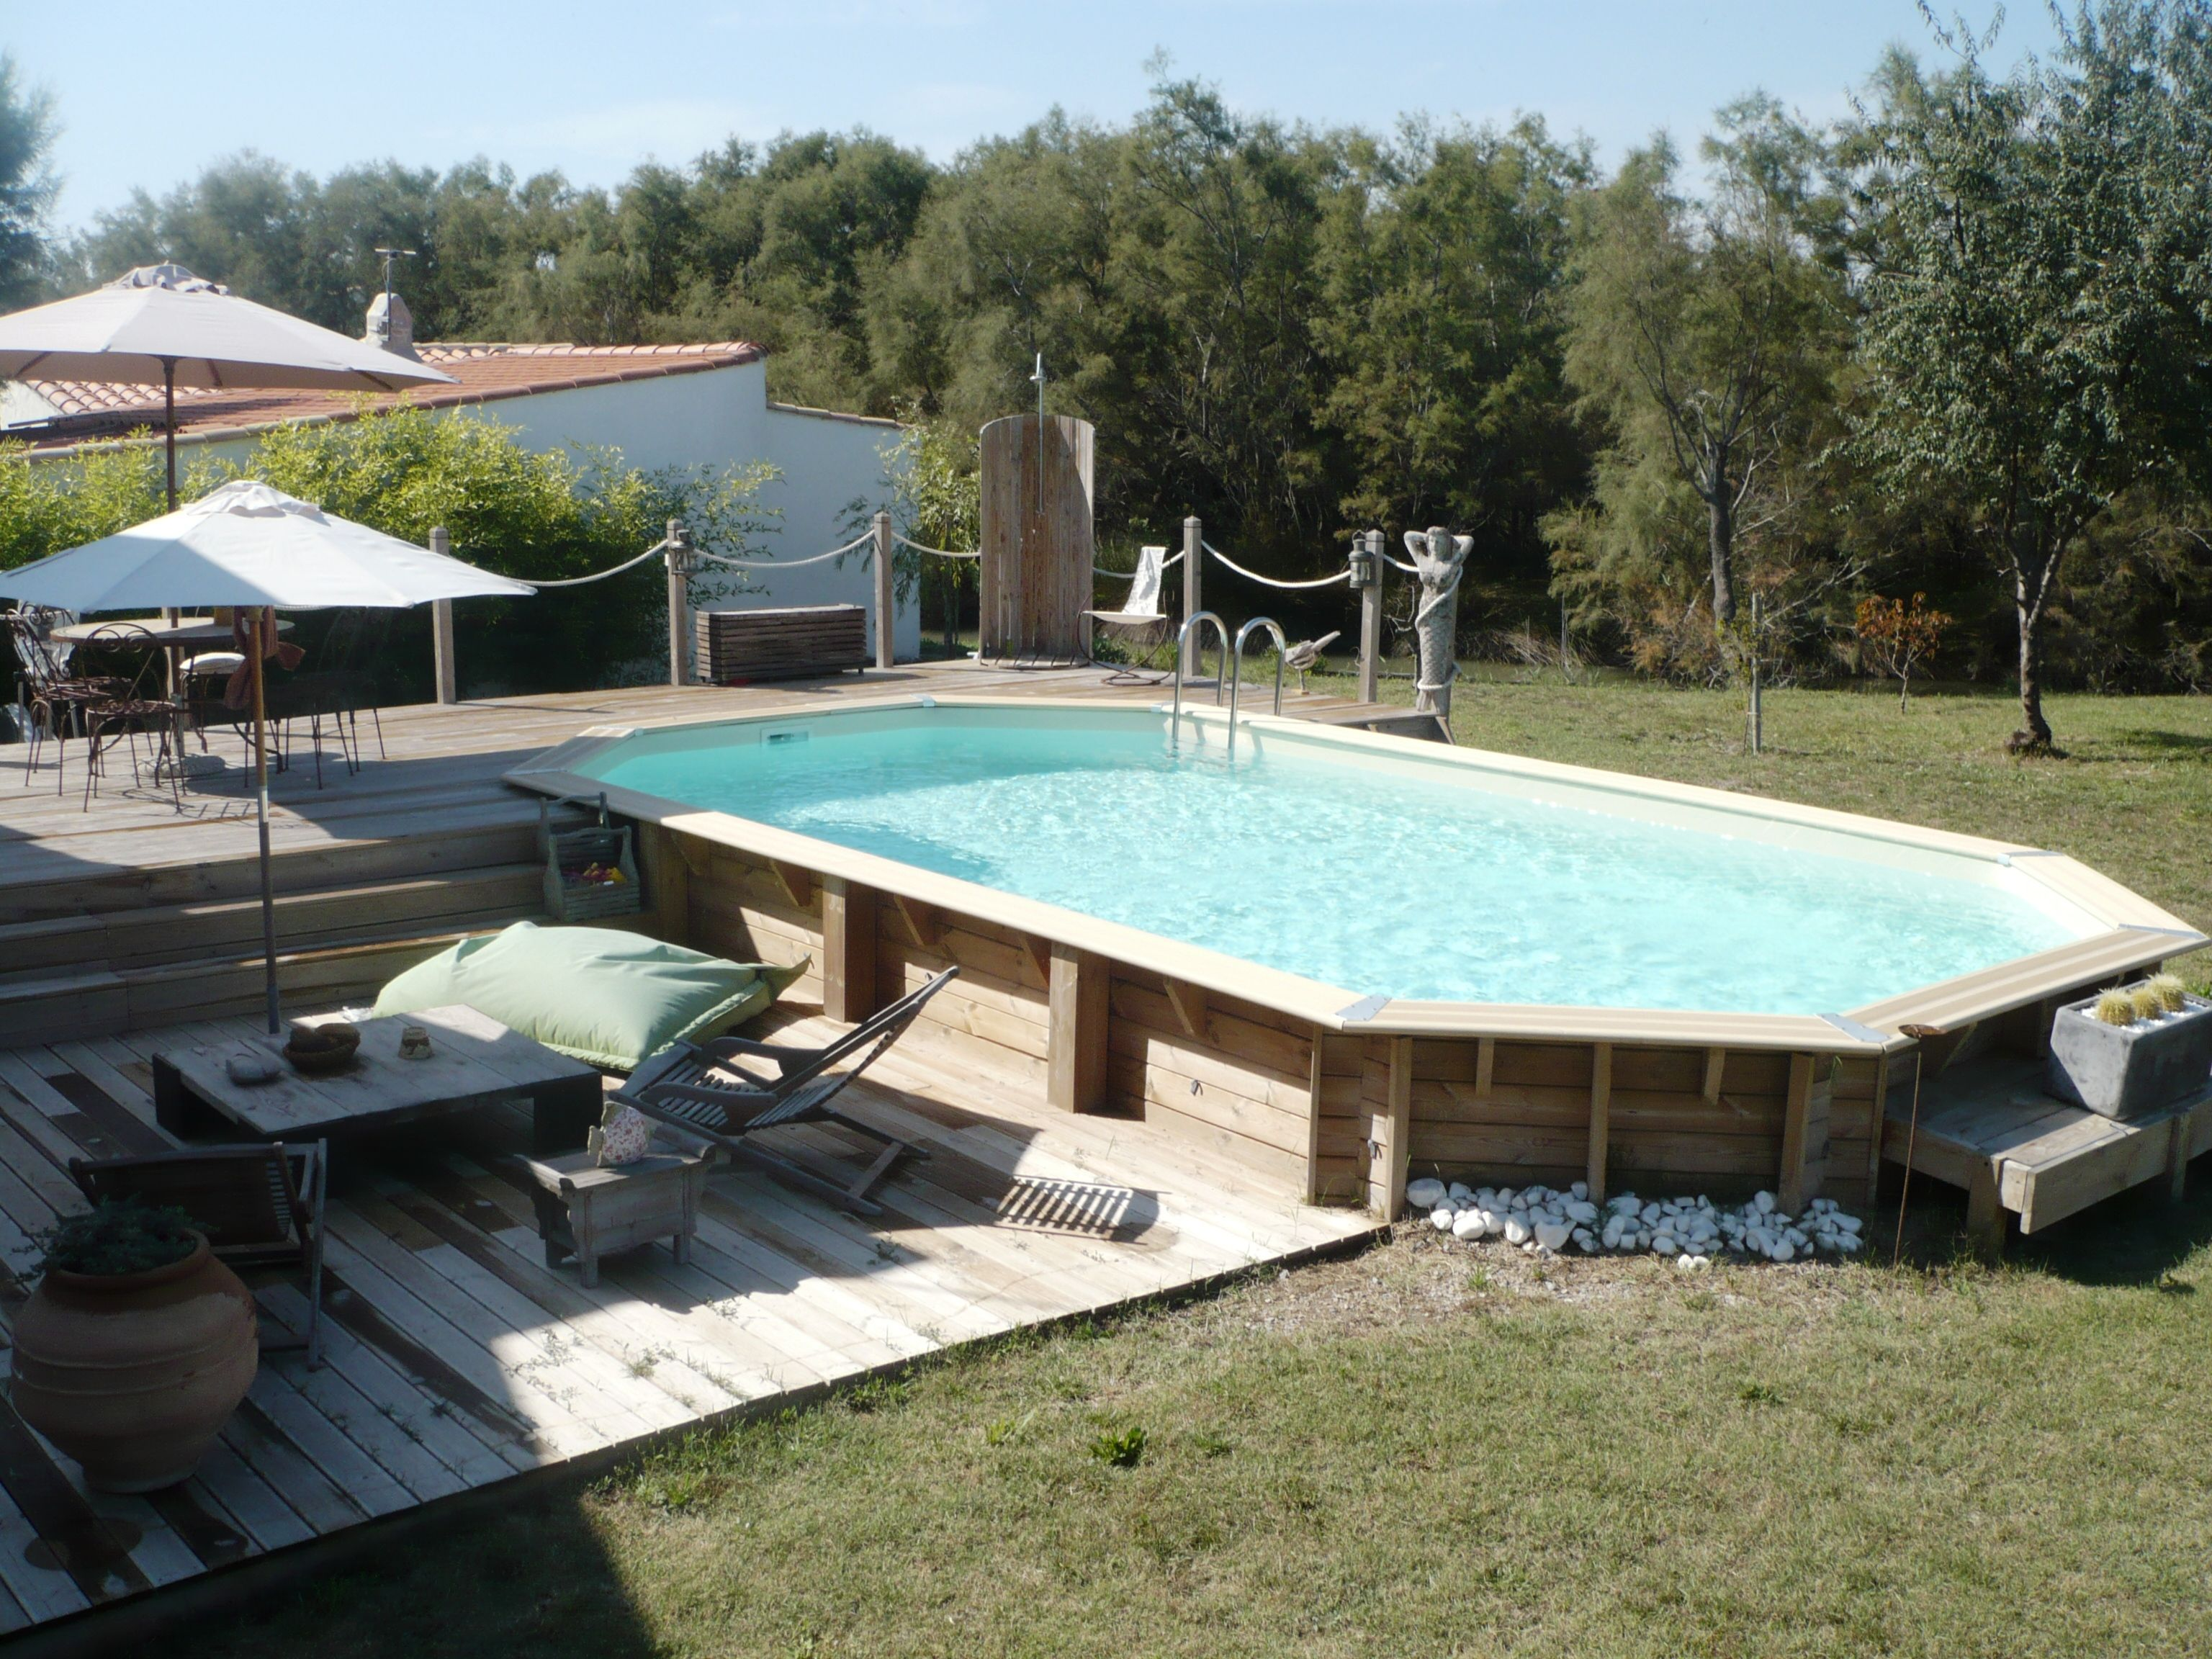 Piscine Bois Octogonale Semi Enterrée - Terrasse piscine semi enterree home sweet home Pinterest Enterré, Piscine semi enterree et